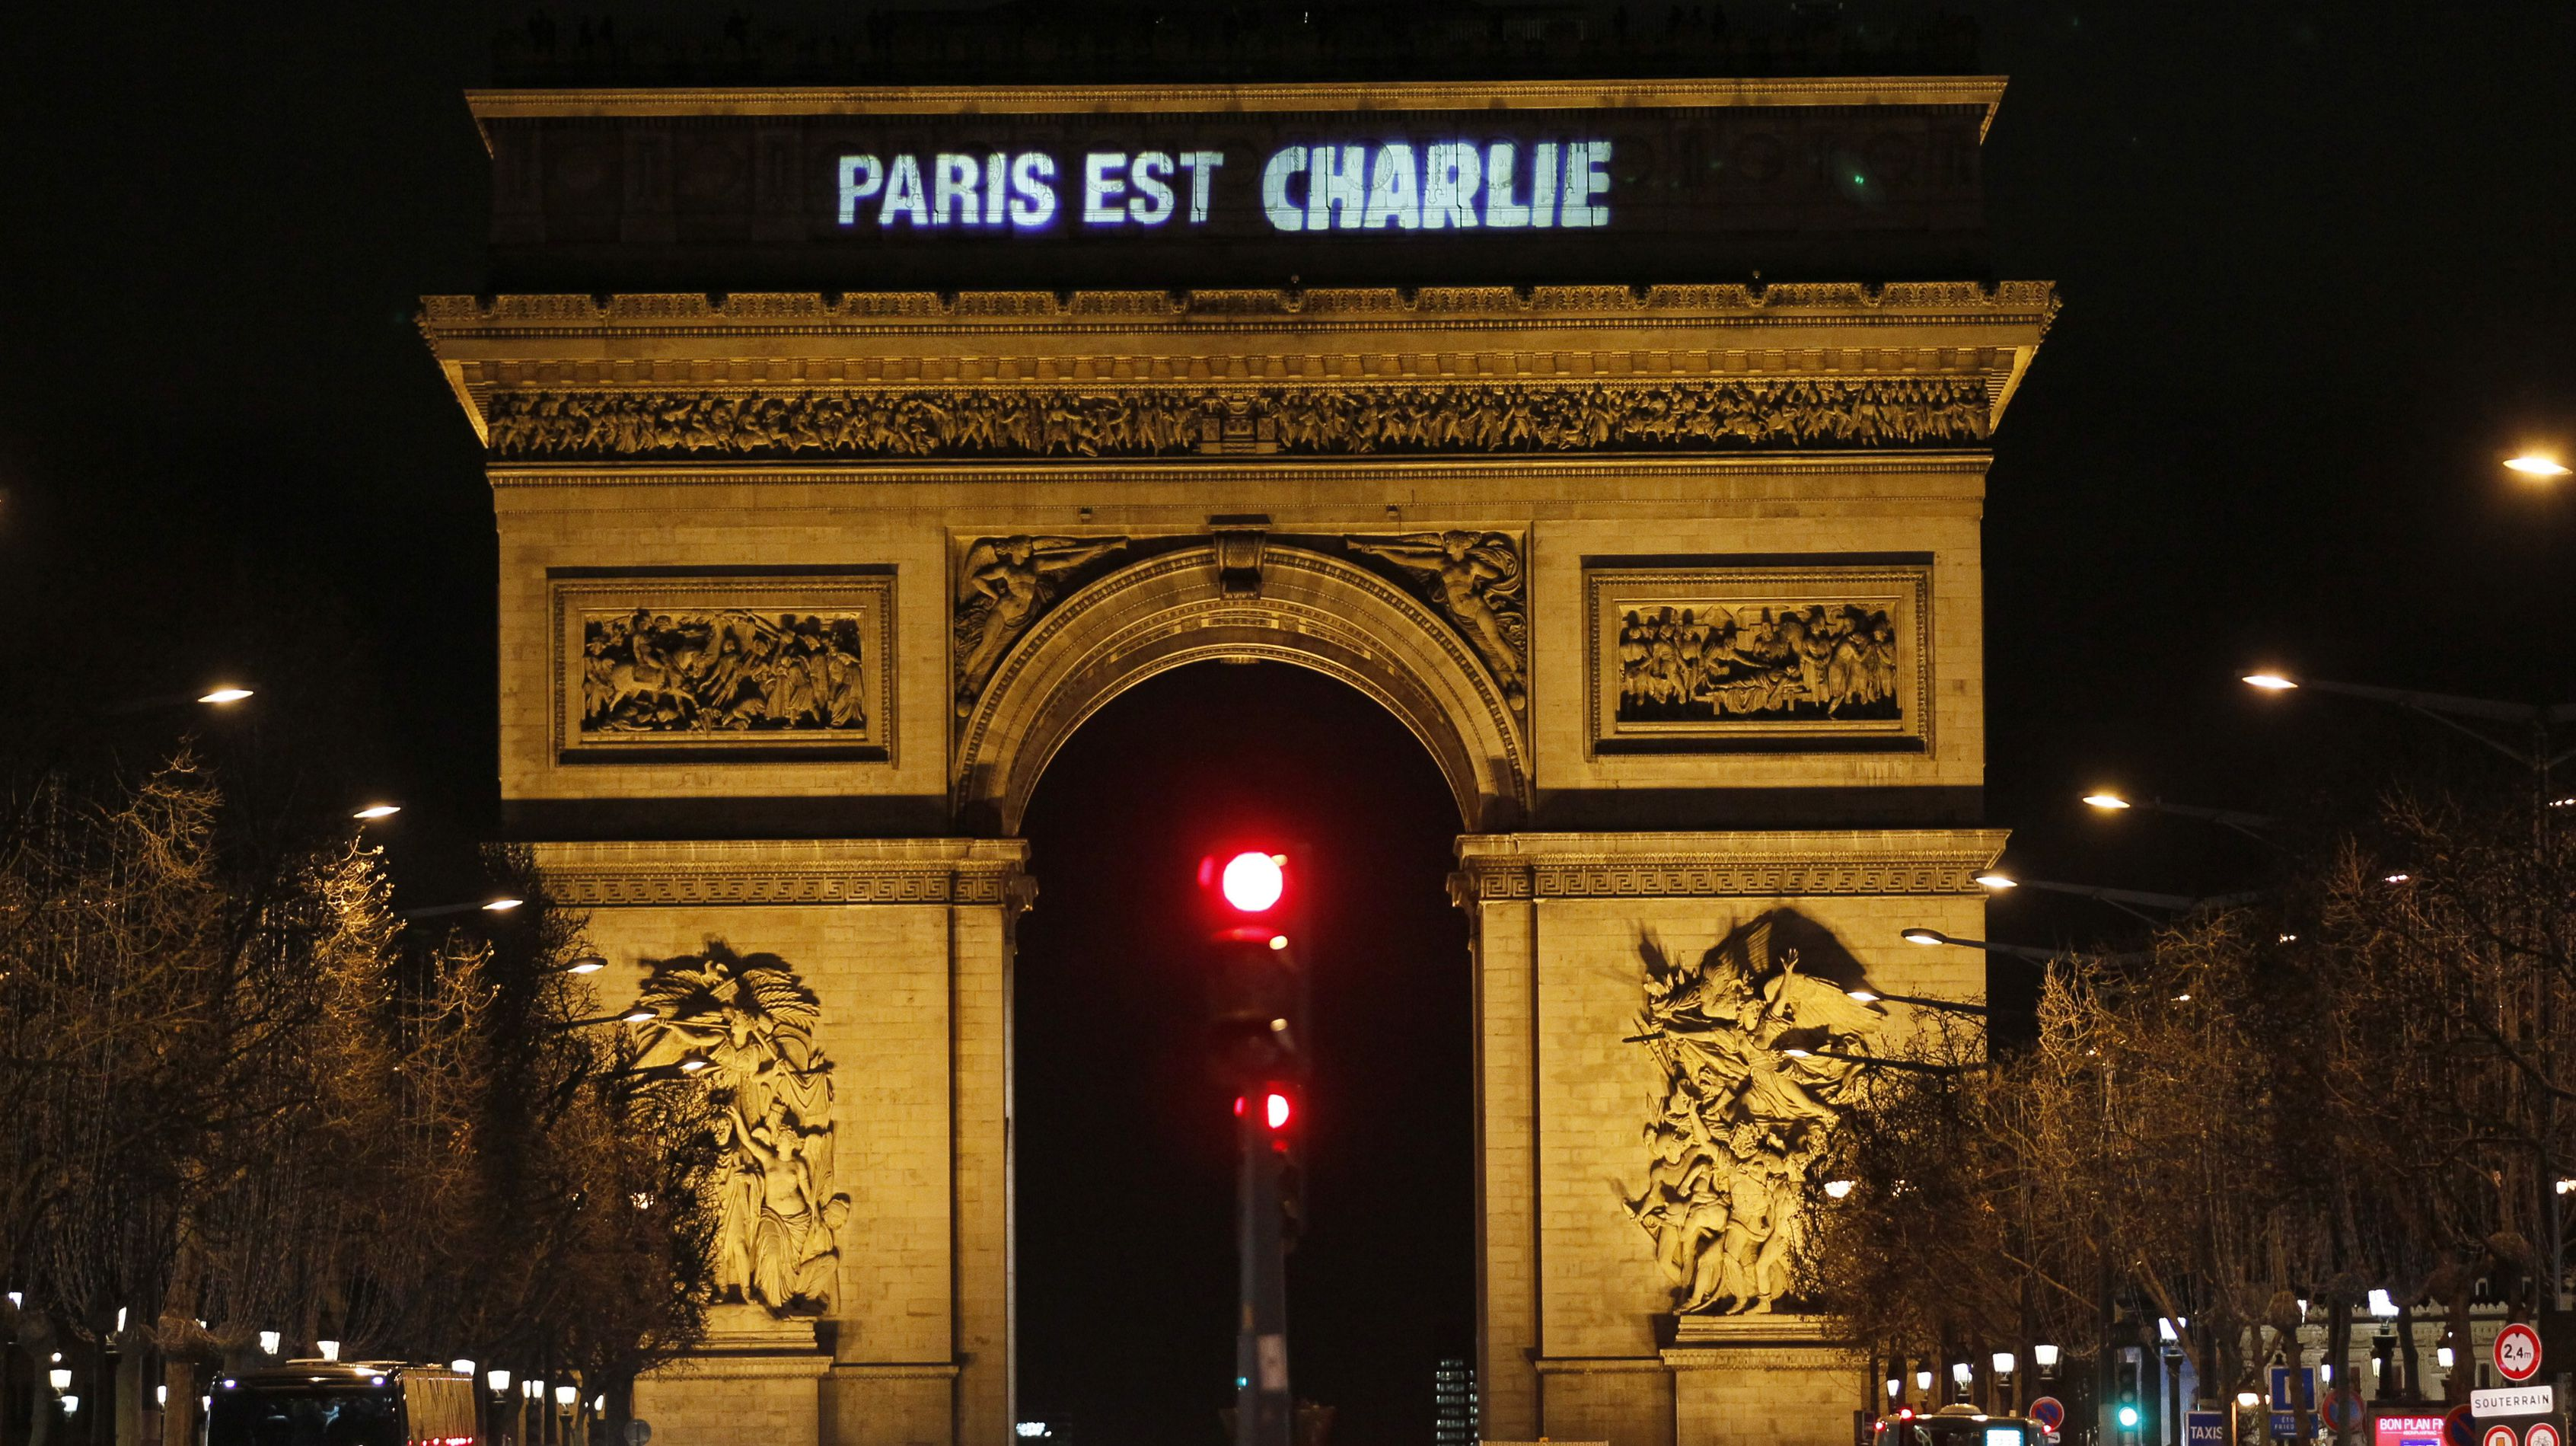 "The message ""Paris is Charlie"" is projected on the Arc de Triomphe in Paris January 9, 2015, in tribute to the victims following Wednesday's deadly attack at the Paris offices of weekly satirical newspaper Charlie Hebdo by two masked gunmen who shouted Islamist slogans. REUTERS/Youssef Boudlal (FRANCE - Tags: CRIME LAW MEDIA) - RTR4KS0J"